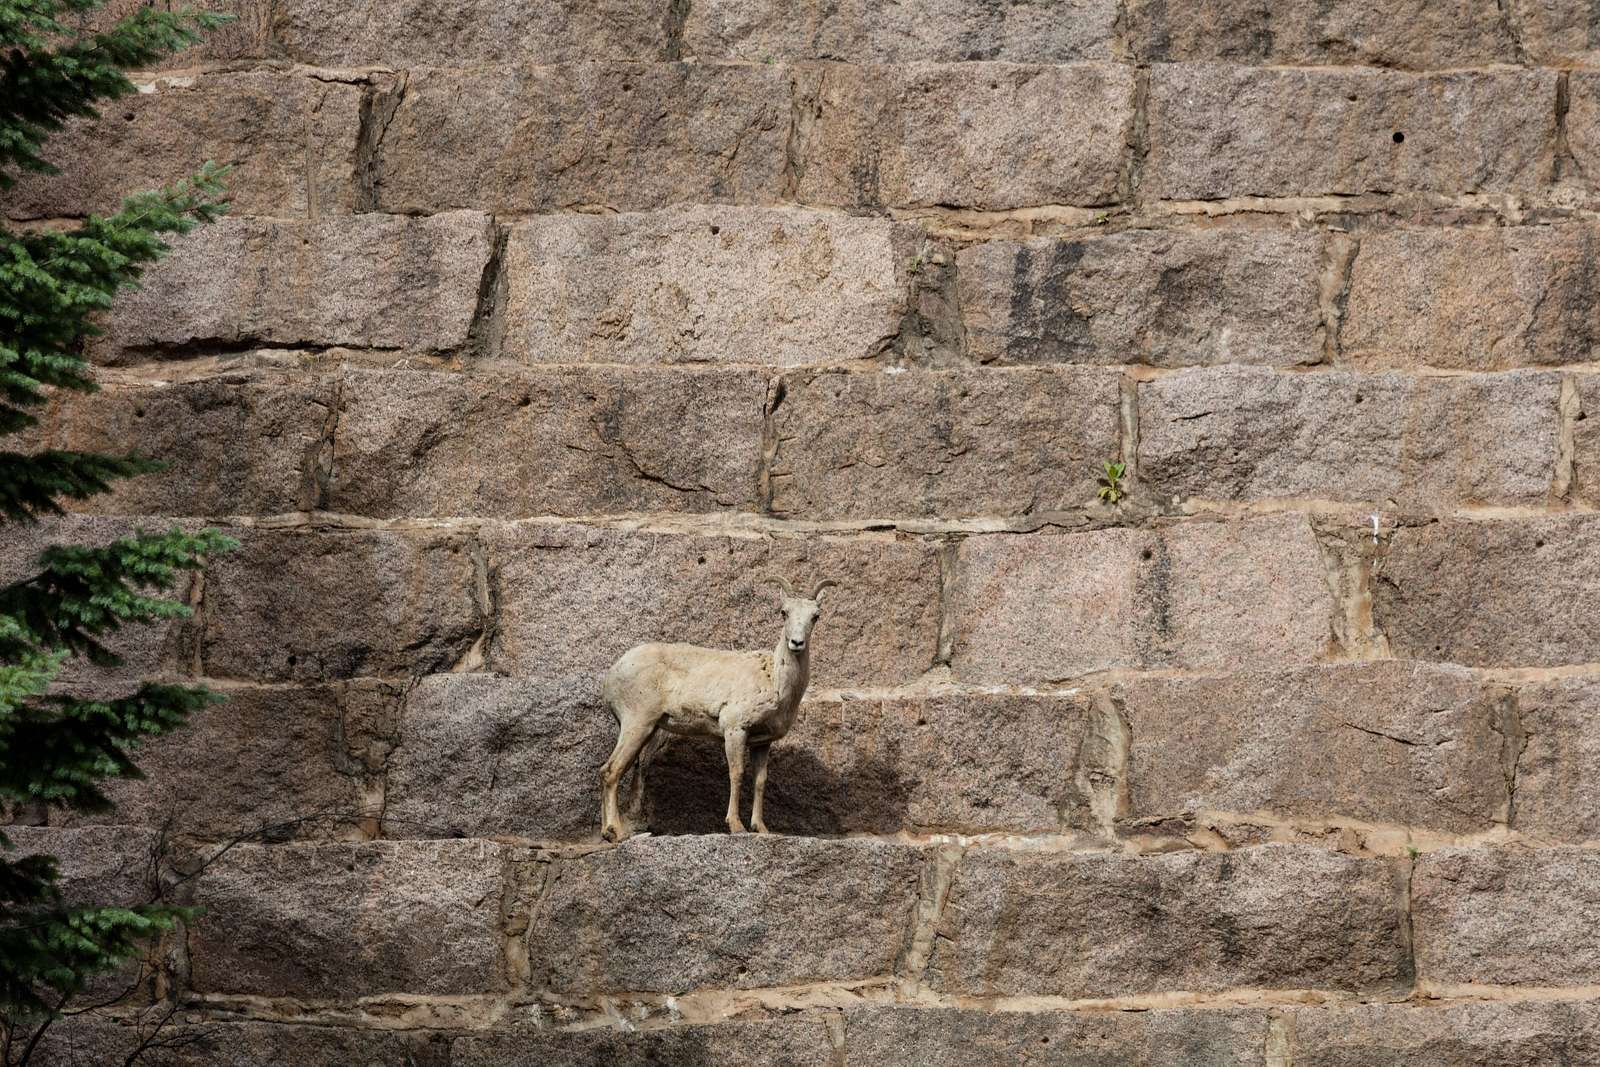 This is not a work of art, but it could be. It's a Rocky Mountain bighorn sheep, almost posing on the very wall of Cheesman Dam, one of the dams that slows and captures water from the South Platte River for use as part of Denver's drinking-water supply. Dam workers say the nimble sheep rightly feel protected from predators there. Cheesman Dam, which was named for Walter Scott Cheesman, a Denver druggist, railroad builder, and designer of water infrastructure, was the world's tallest at 221 feet when it was completed in 1905